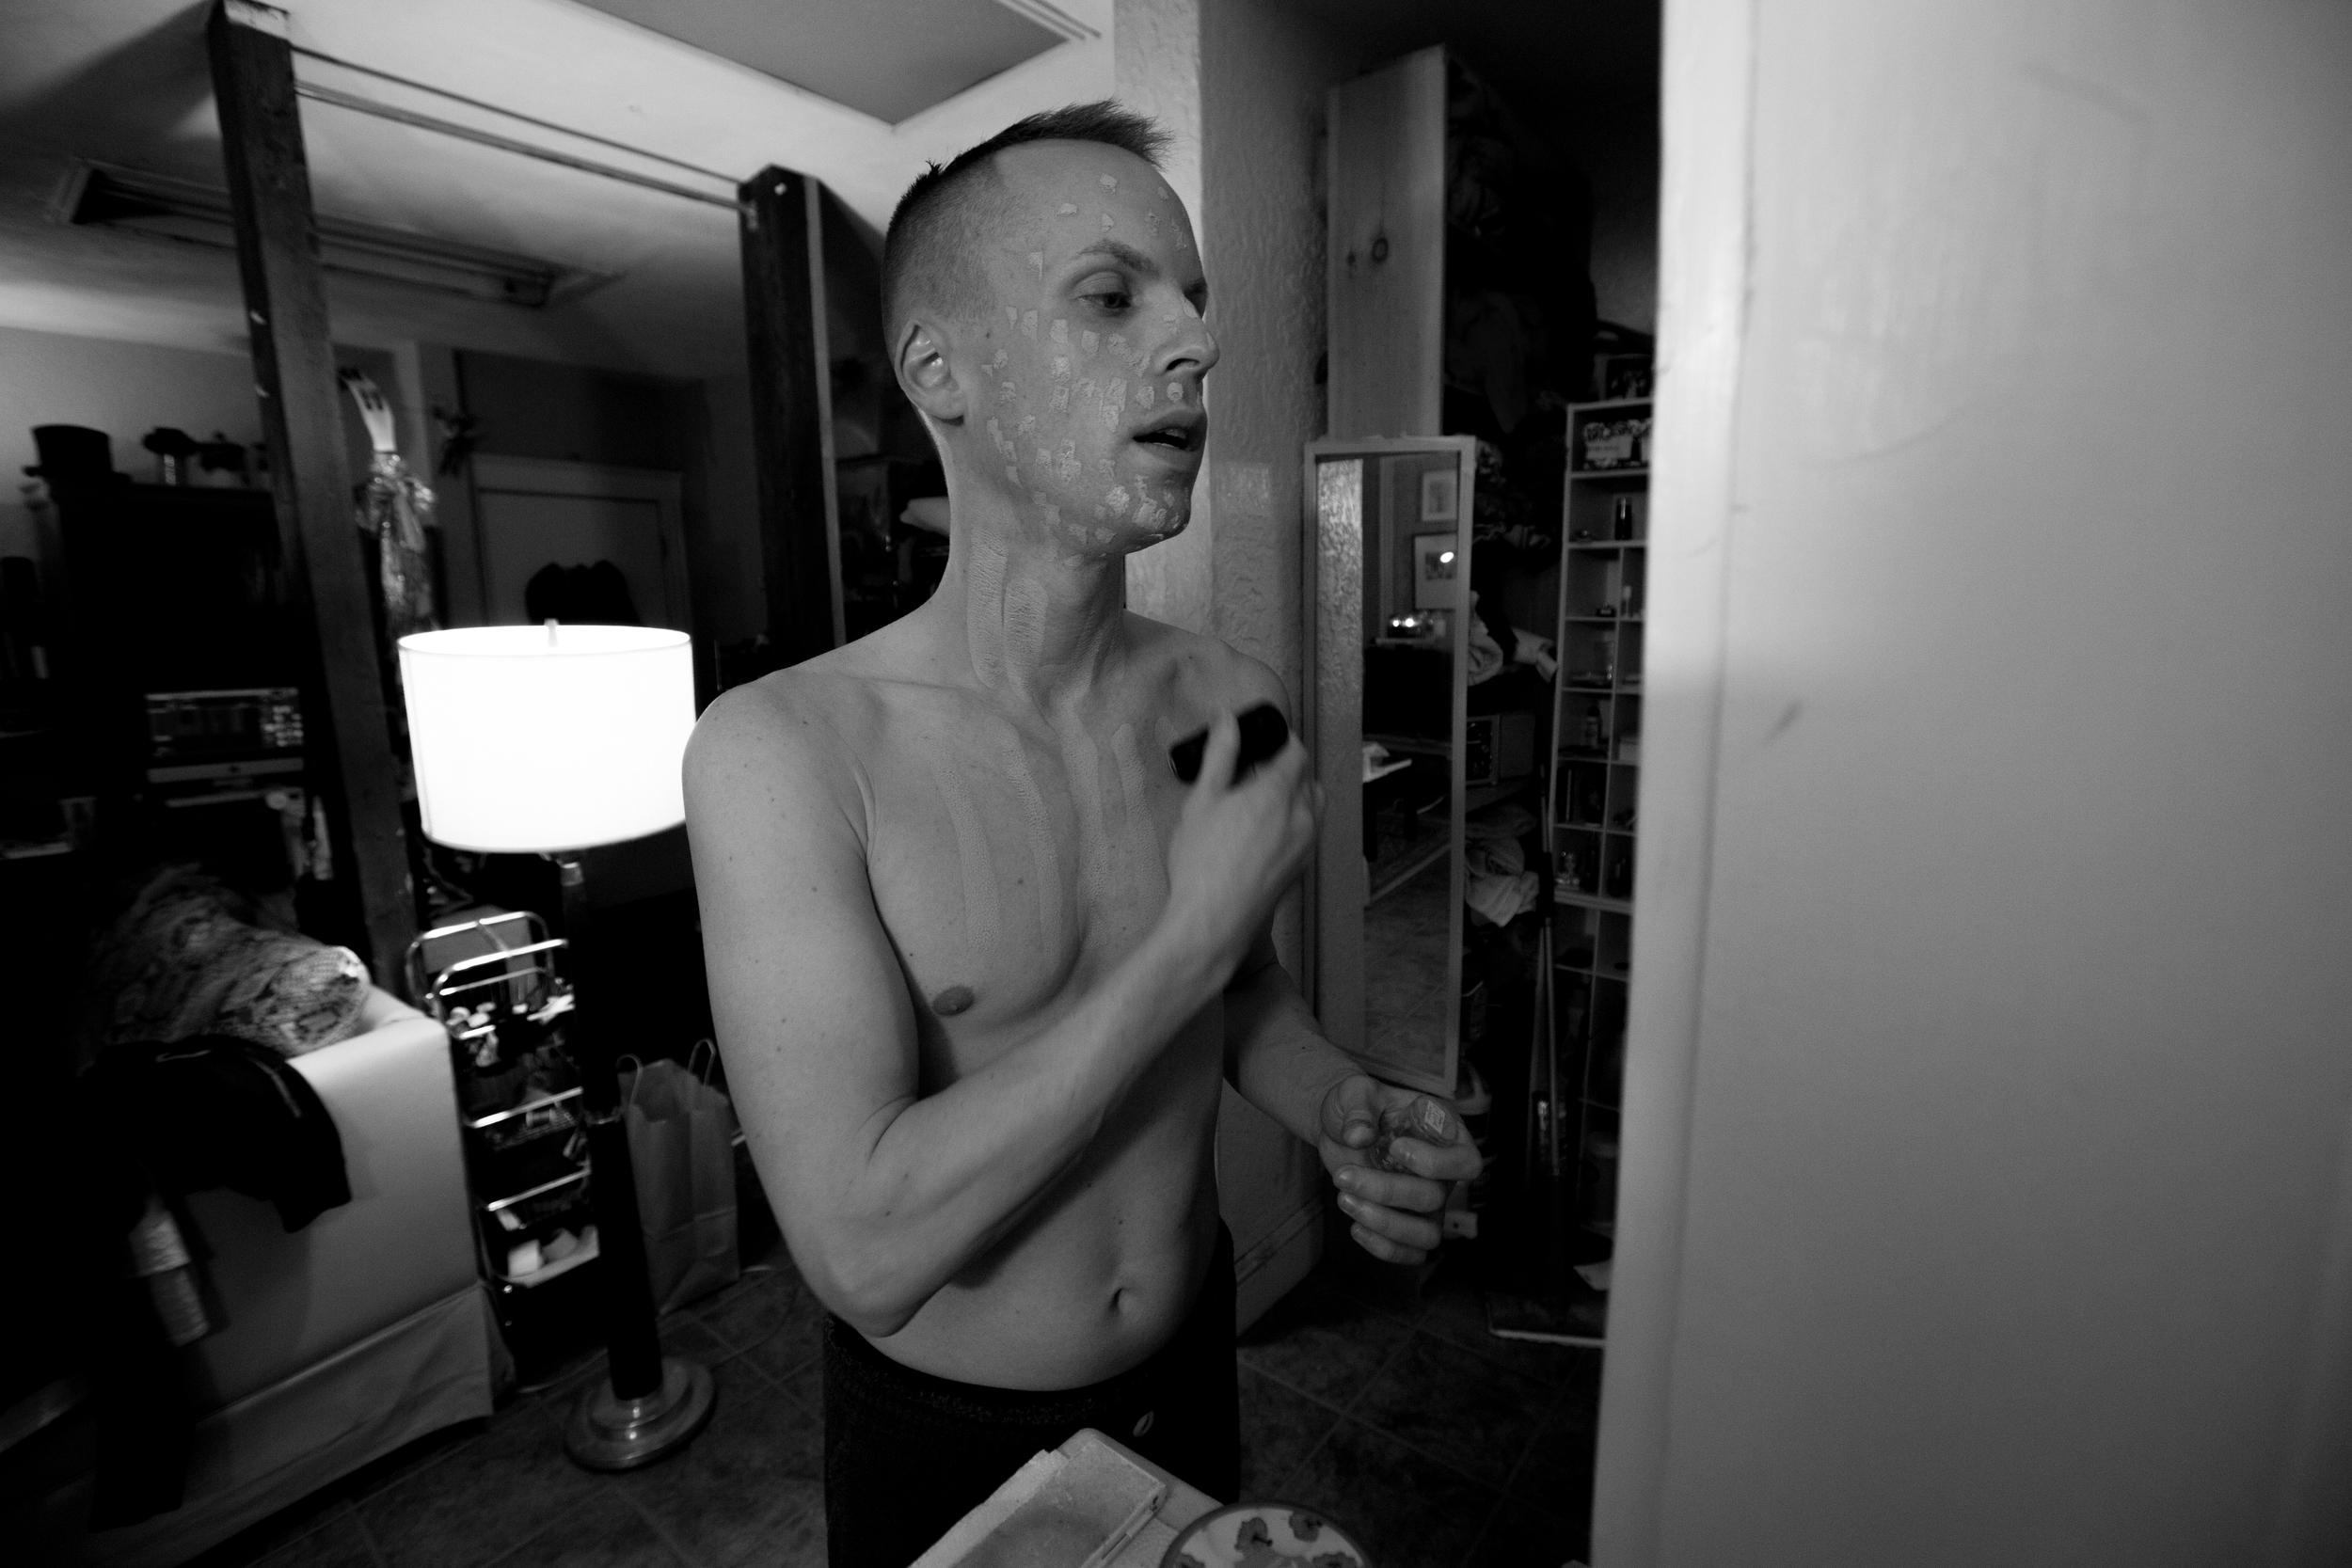 """Brian McCook applies makeup to his chest and face in his Broadway Street apartment in Boston, Mass. while preparing to cross-dress for a performance at Jaque's, a bar in Boston that features dancers in drag. """"I've been dressing like a girl since I was three,"""" McCook said. Photo credit: Justin Saglio."""